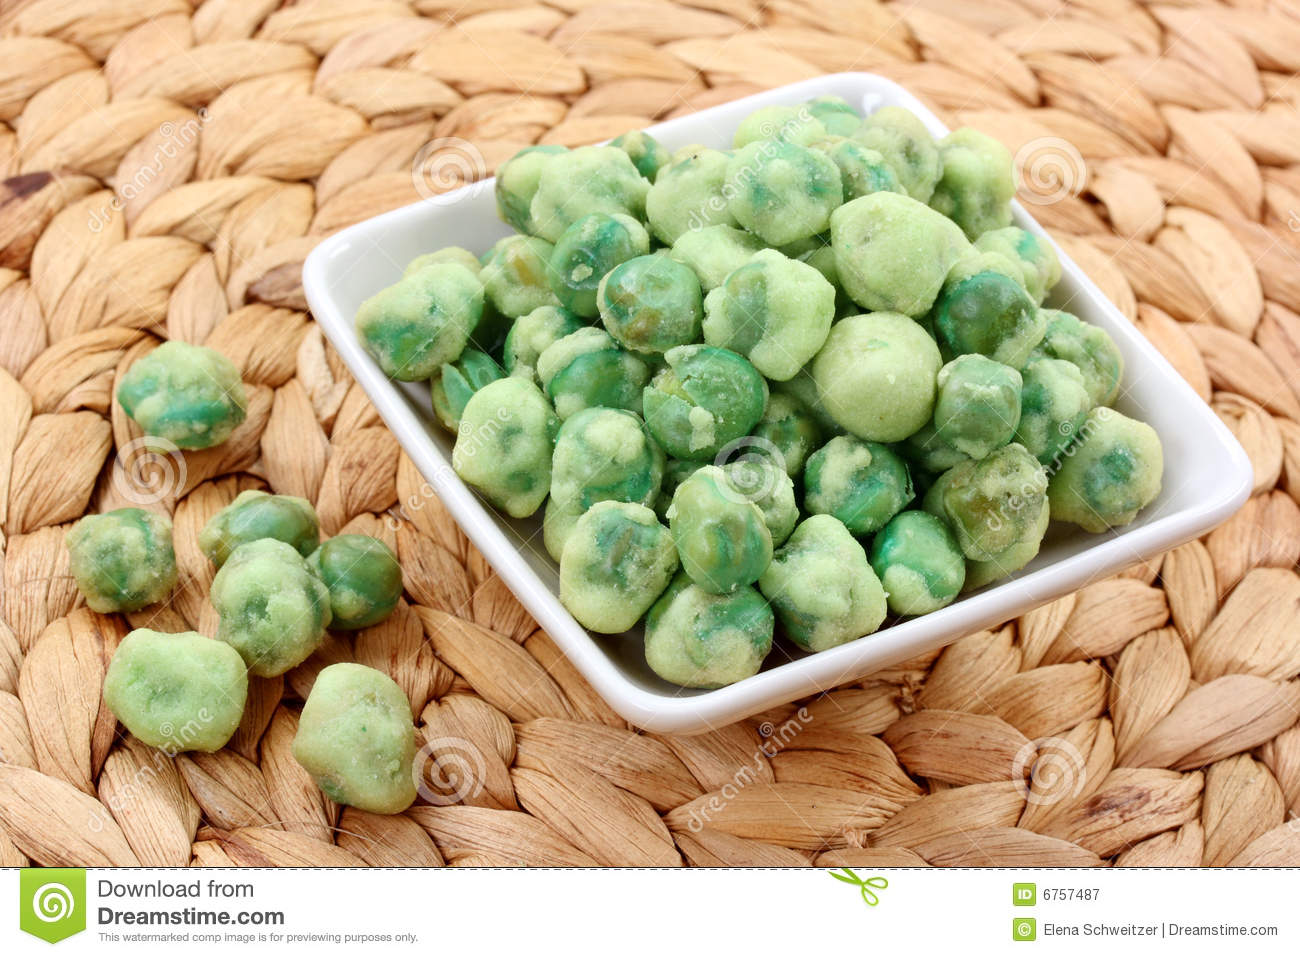 how to eat wasabi peas